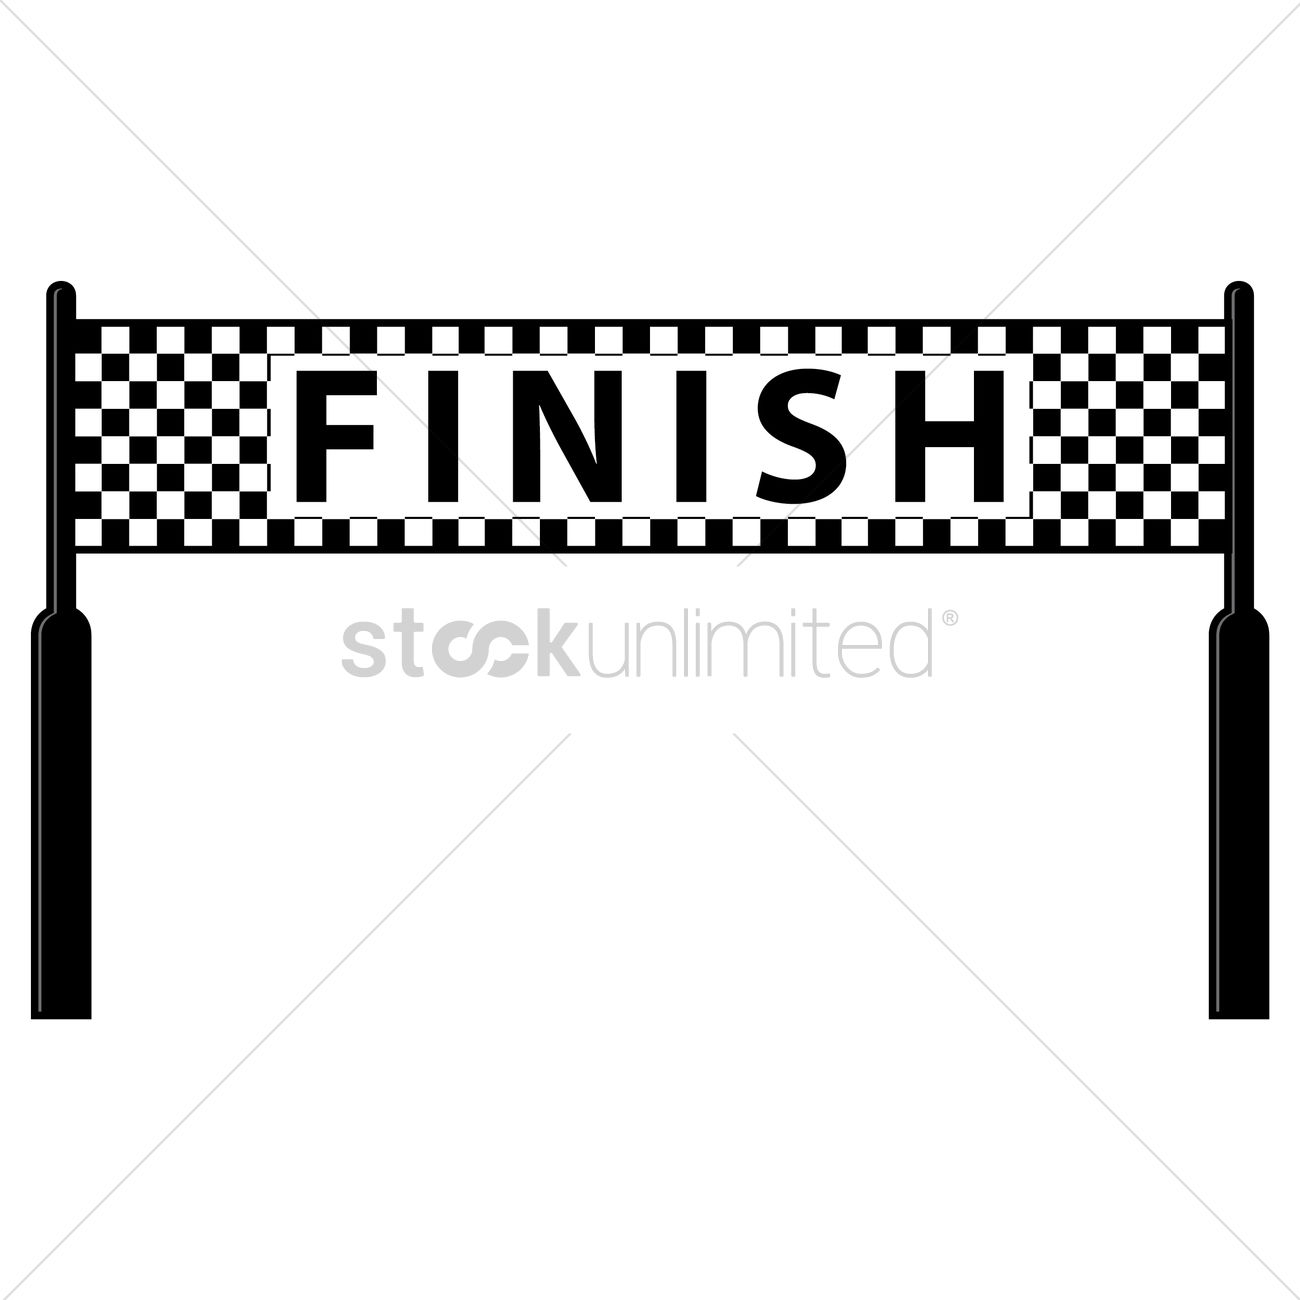 Race Car Party in addition 17276713 Racing Theme Bedroom Finish Line Checkered Flag Playroom Flooring likewise Finish flag in addition Race track road clipart together with Racing Flag. on race car flag printable